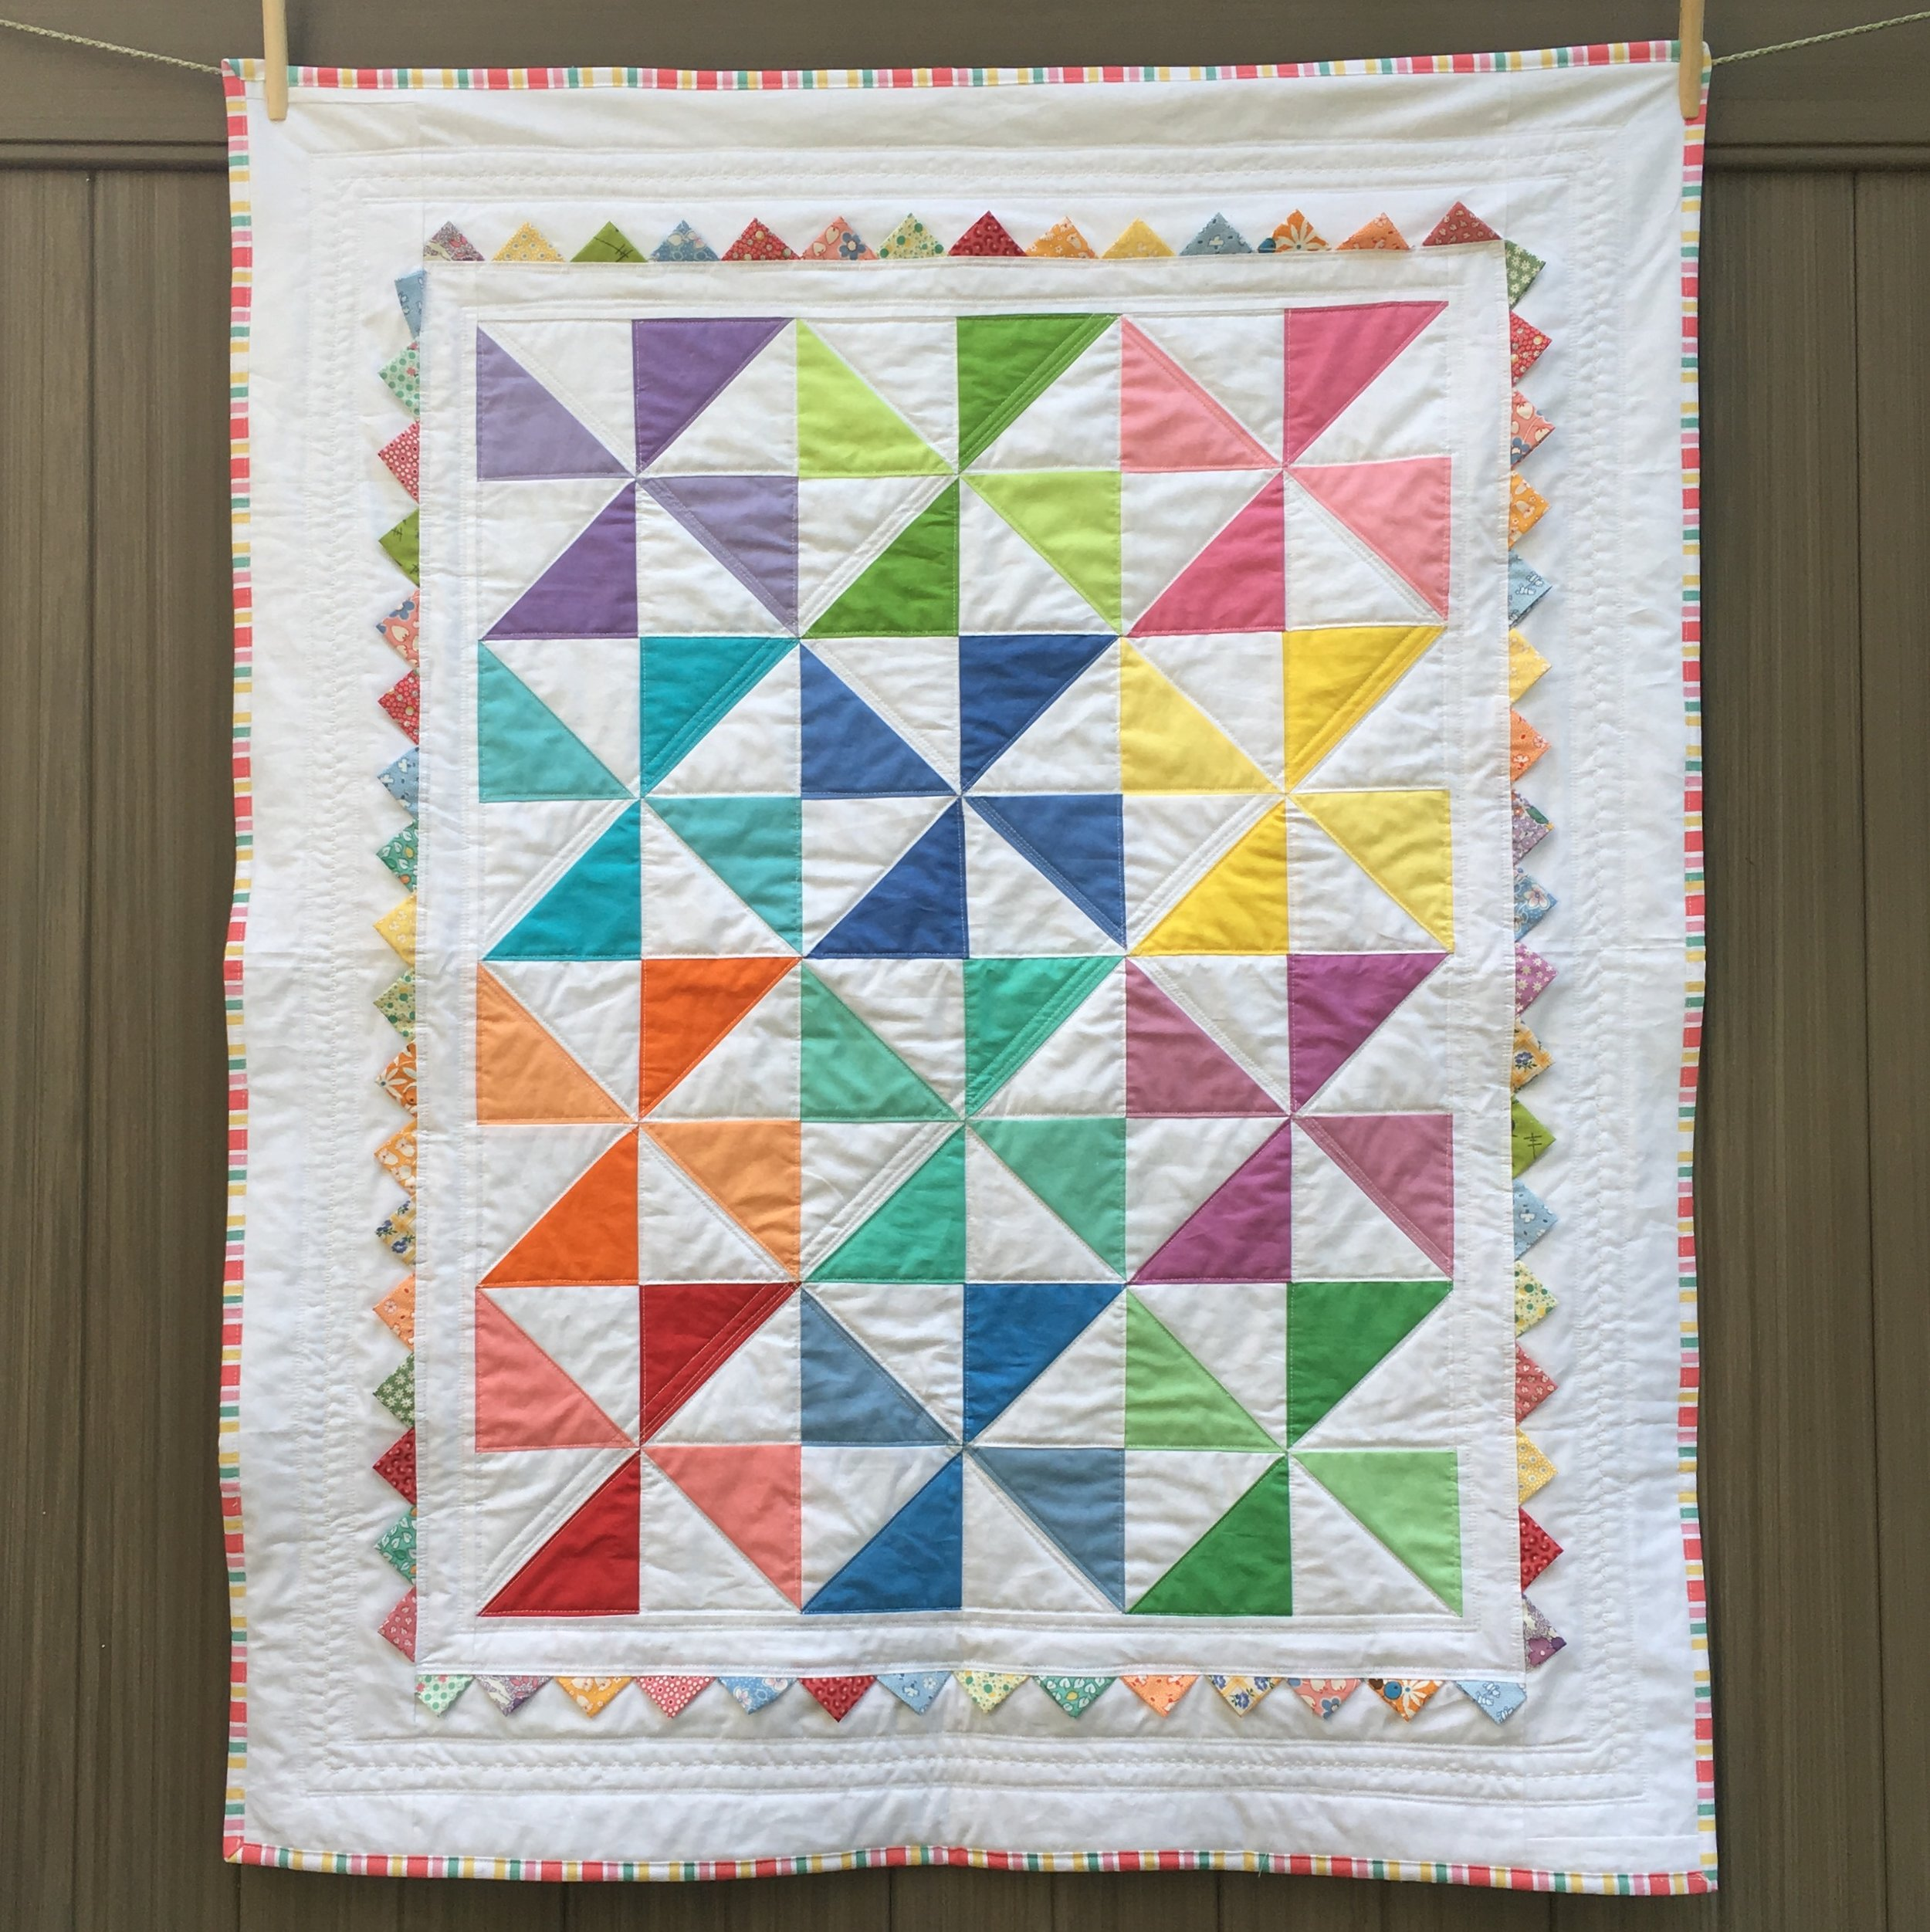 """Pinwheel Baby Quilt"" by Jodi for Moda Bake Shop, 36 x 44 inches"